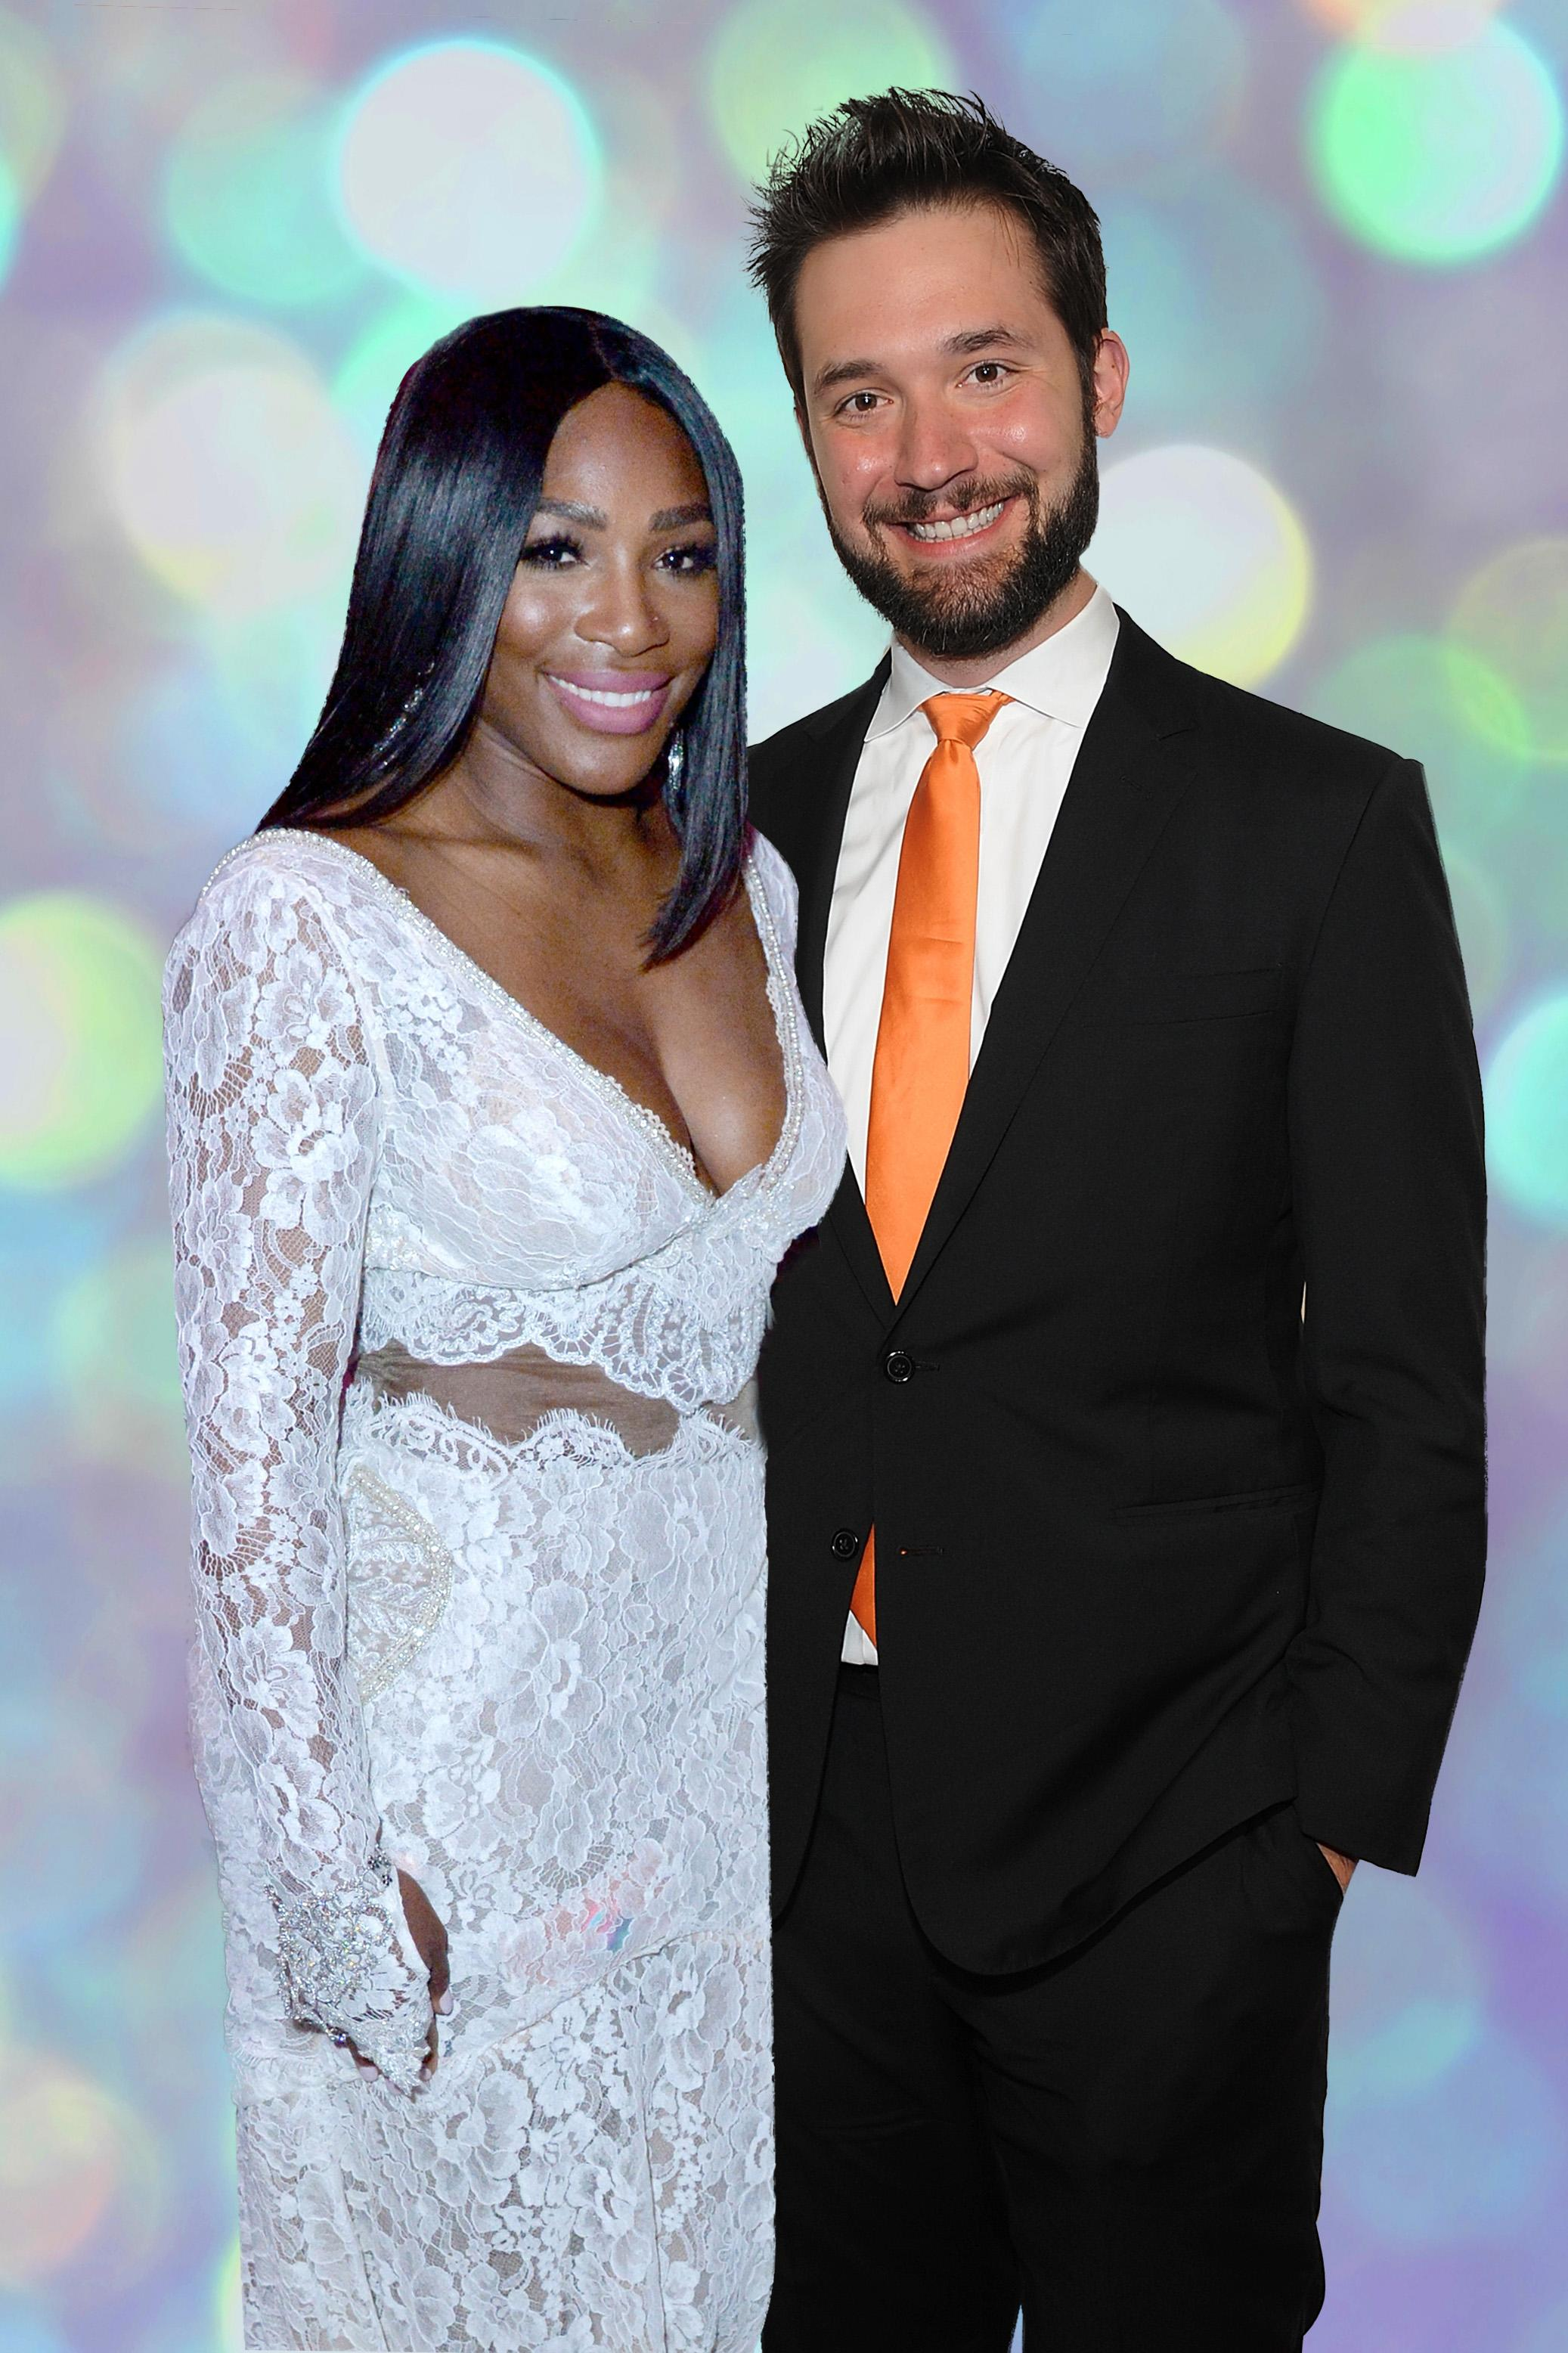 Serena Williams And Alexis Ohanian Marry In Fairy Tale New Orleans ...